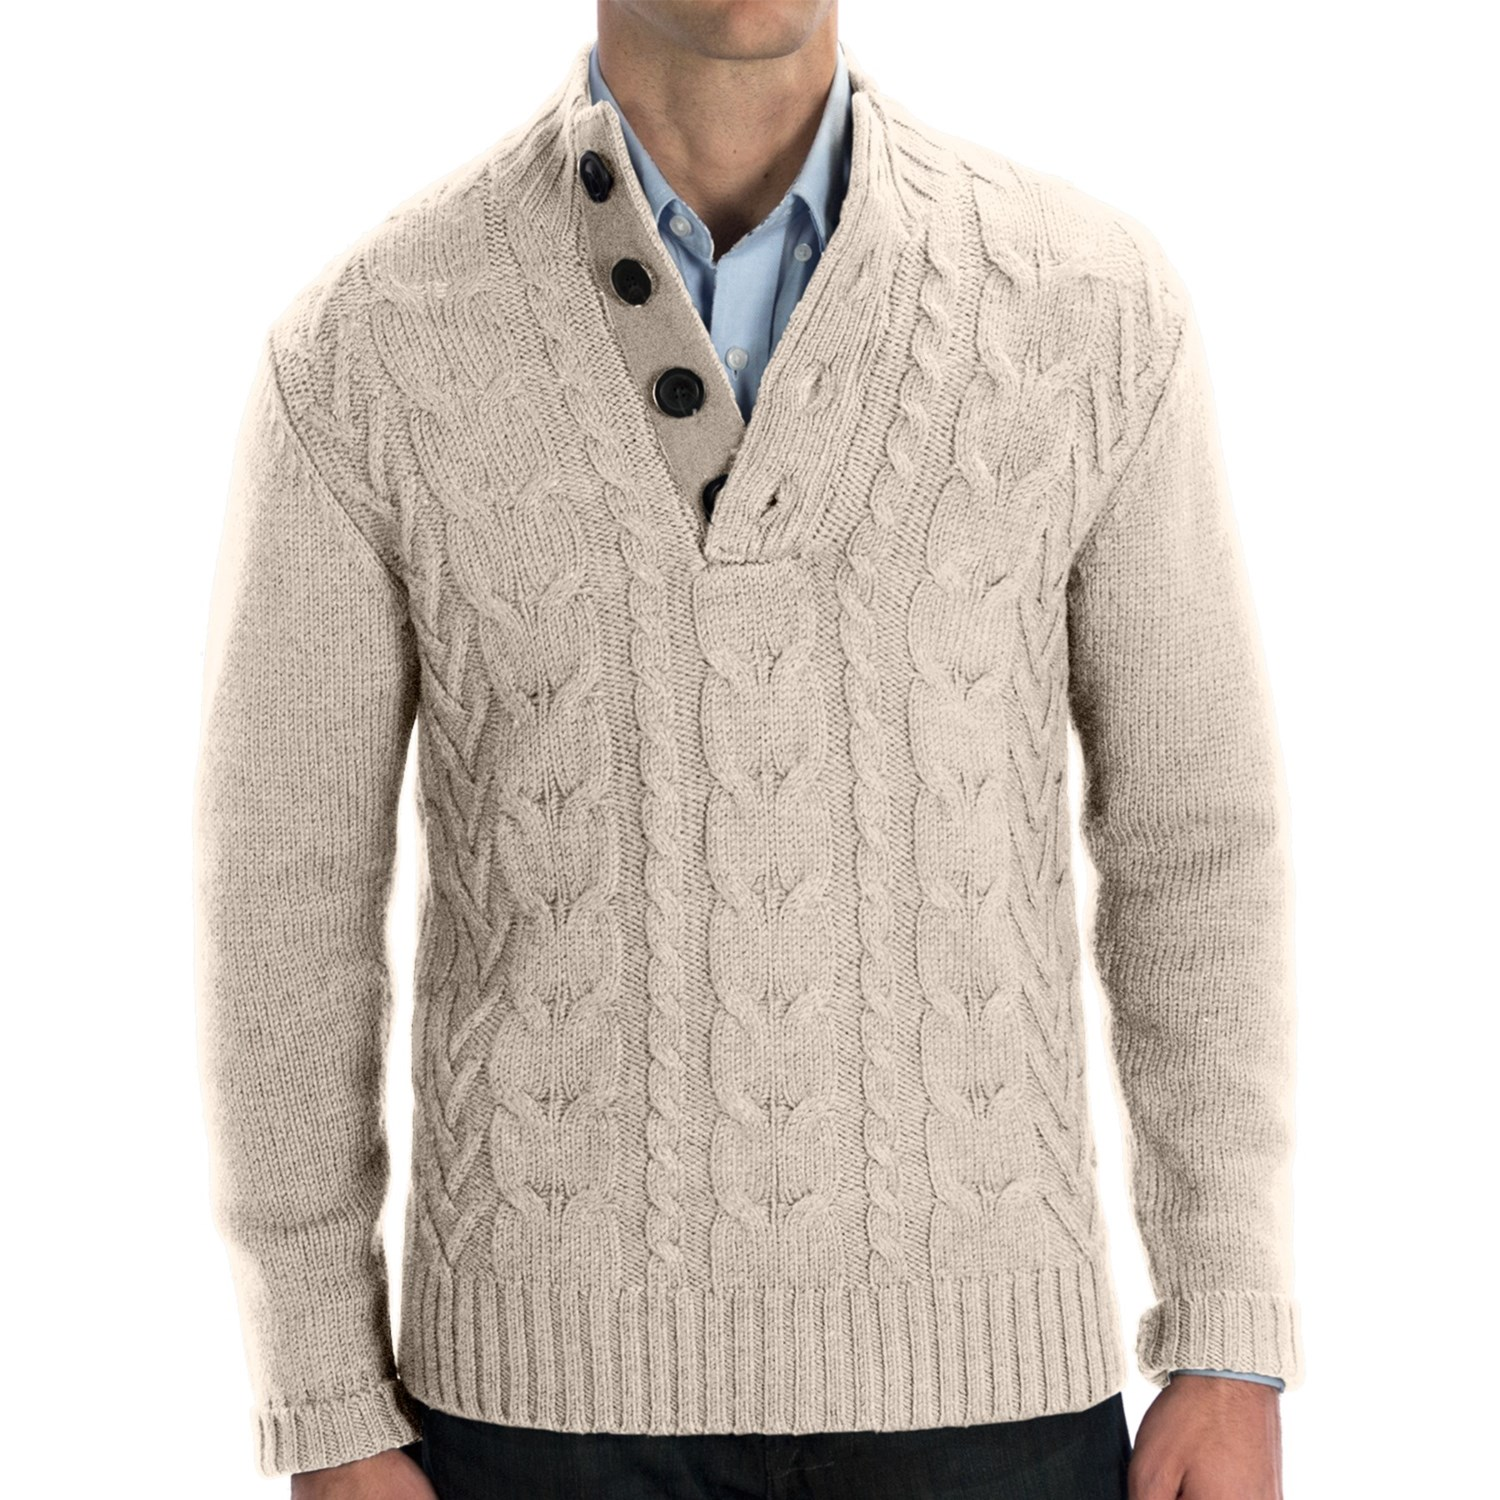 Shop the Latest Collection of Cardigan Sweaters for Men Online at celebtubesnews.ml FREE SHIPPING AVAILABLE!